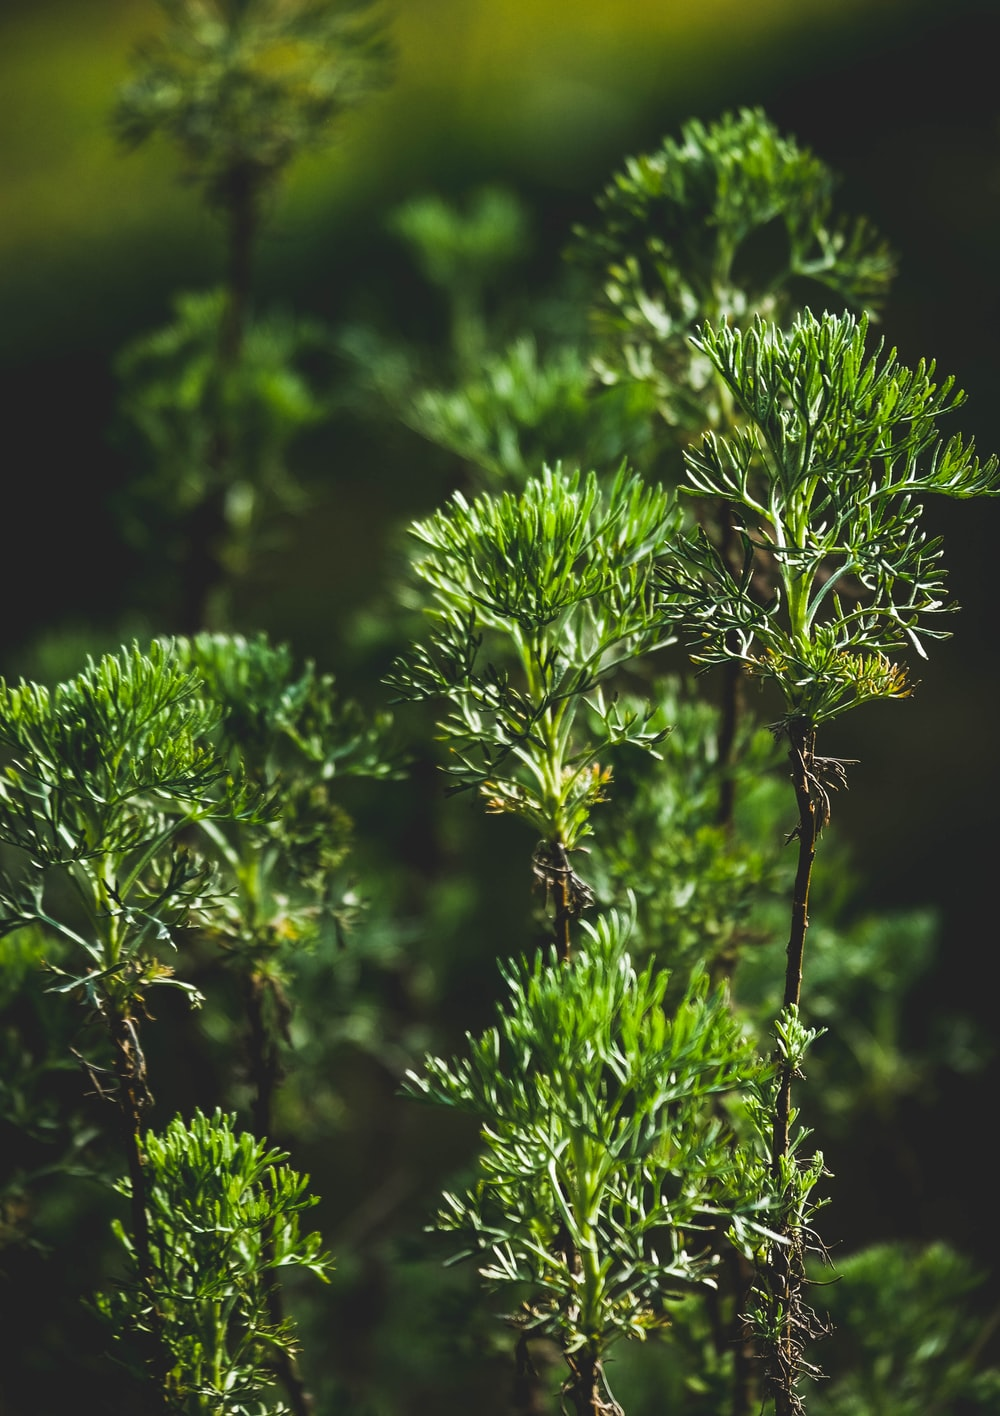 green plant in close up photography